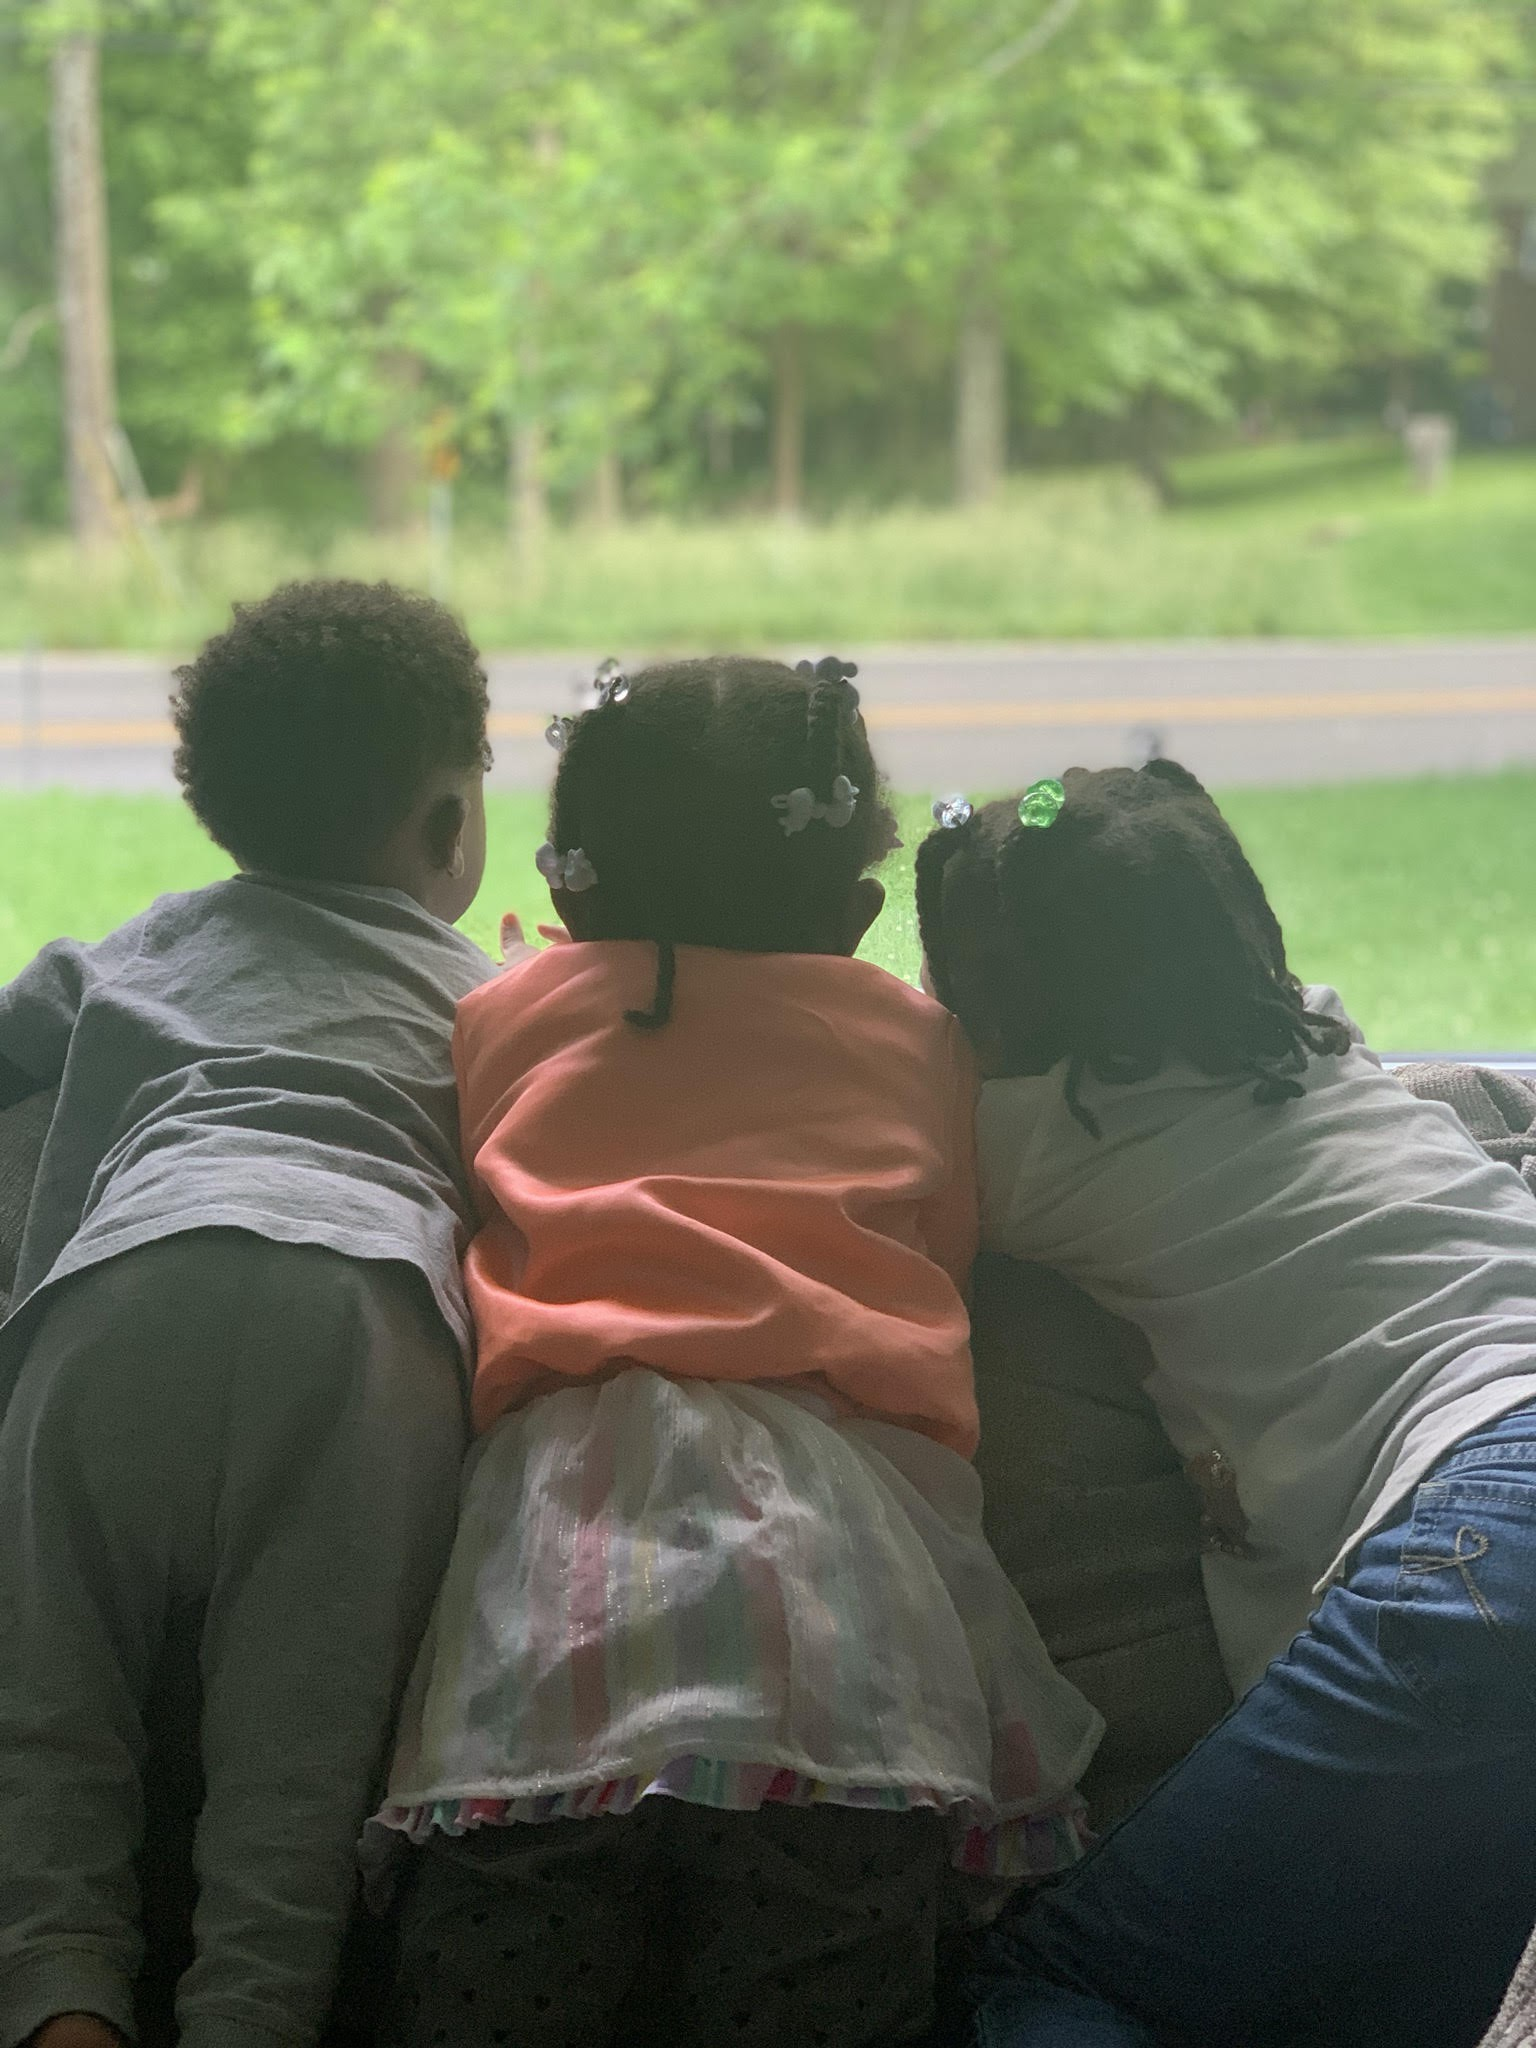 3 young Black children seen from behind, looking out the window at grass and a road.